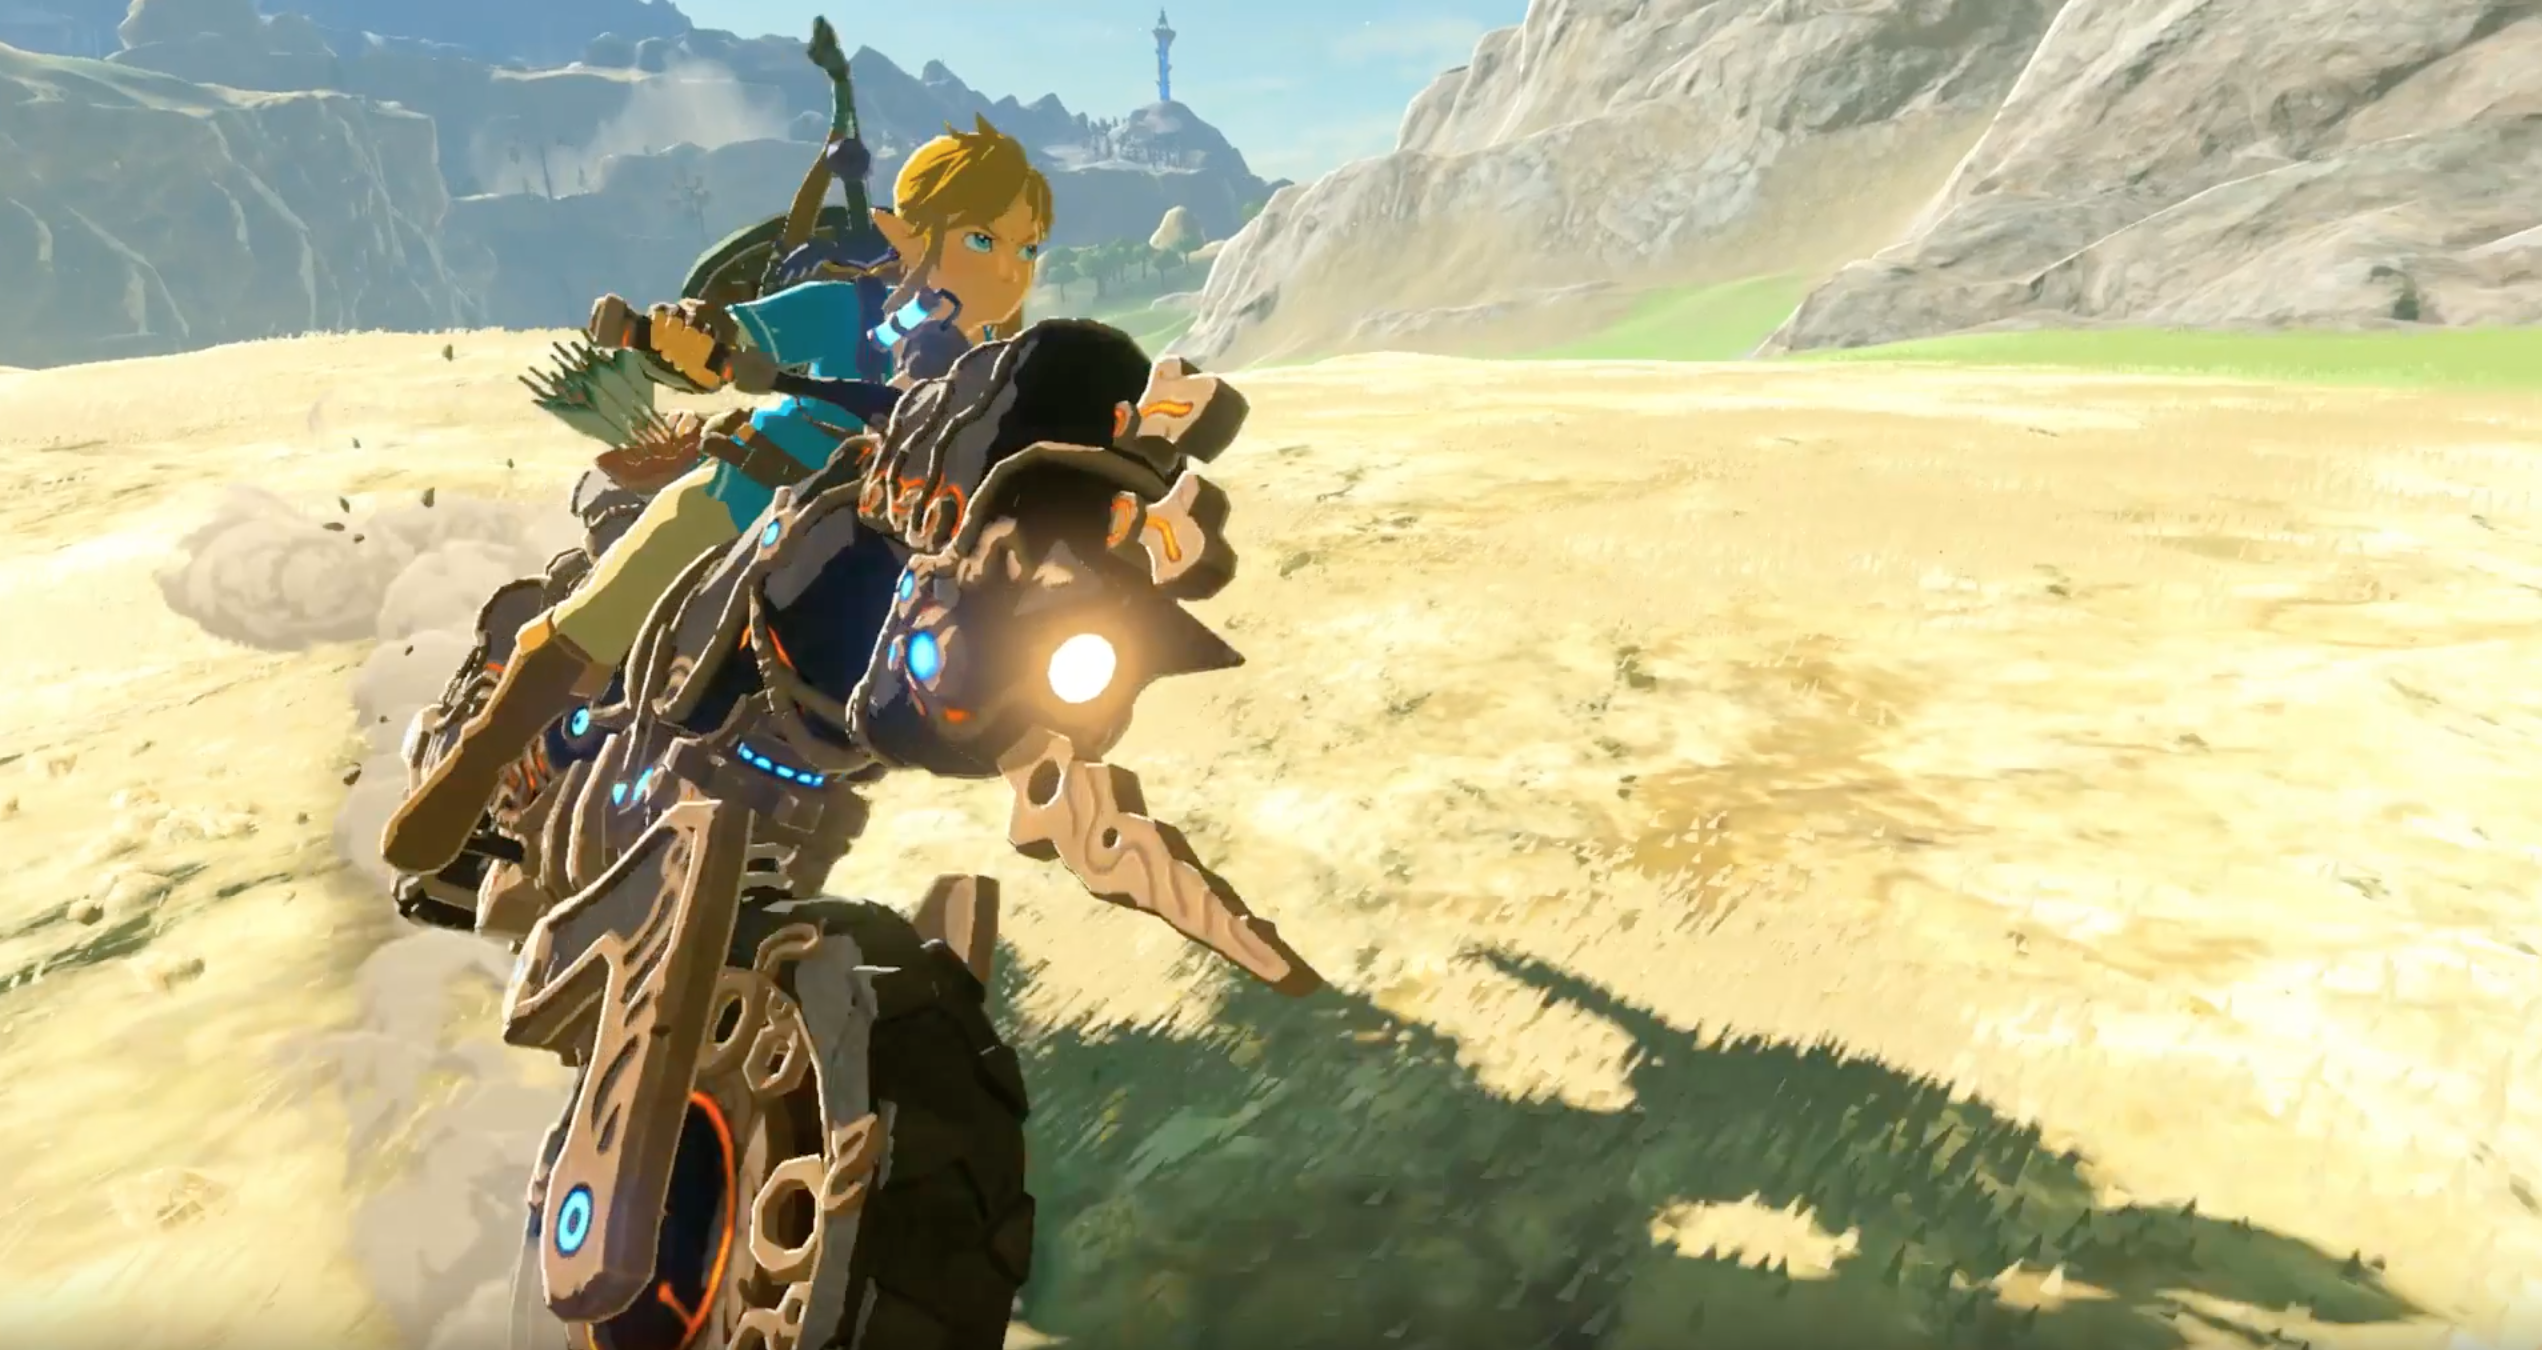 Suddenly That Concept Art Of An Emo Link On A Motorcycle From The Game Developers Conference Makes Whole Lot More Sense